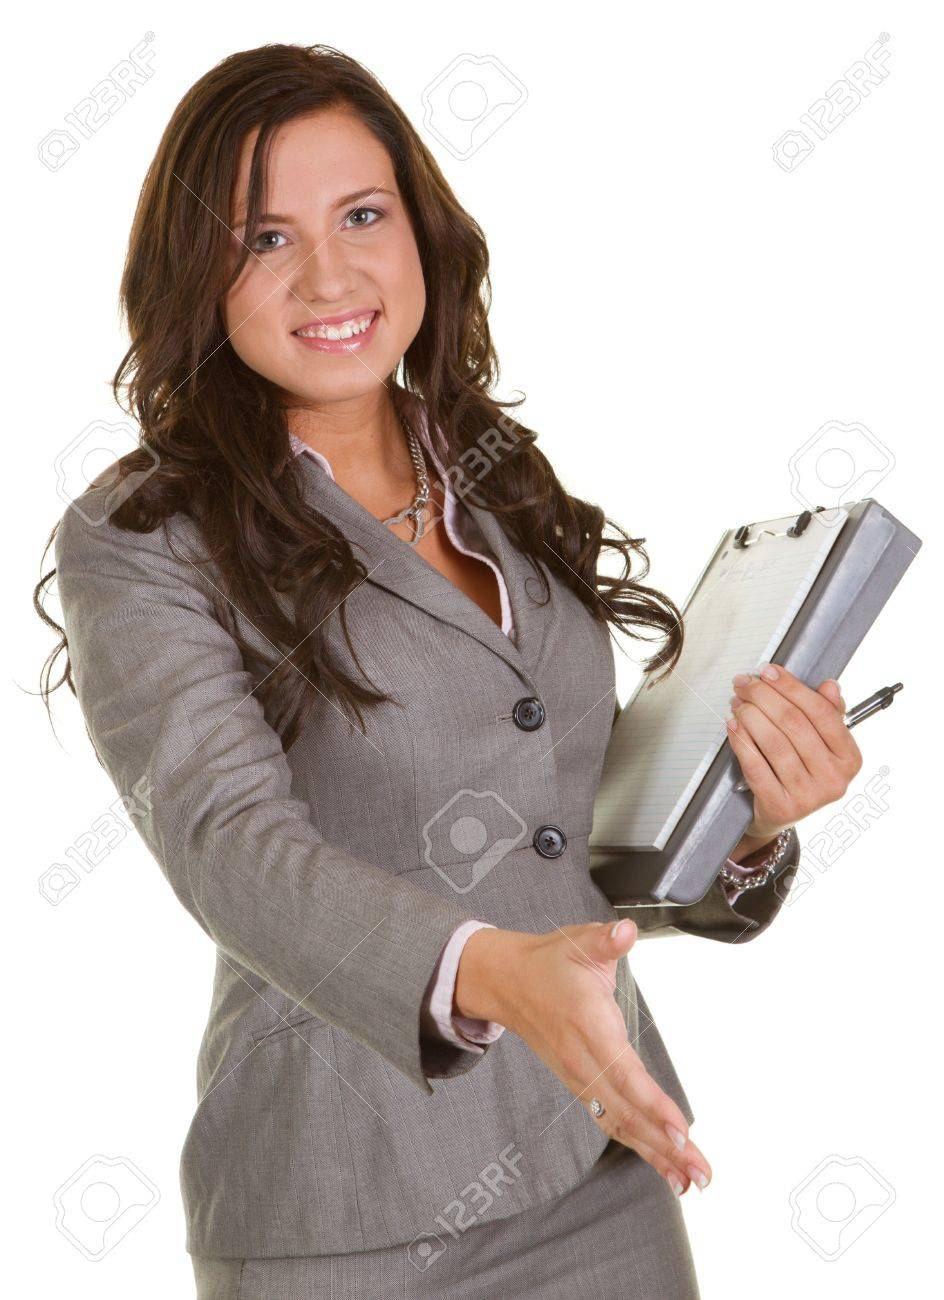 Young businesswoman extending her hand to shake hands Stock Photo - 8032539